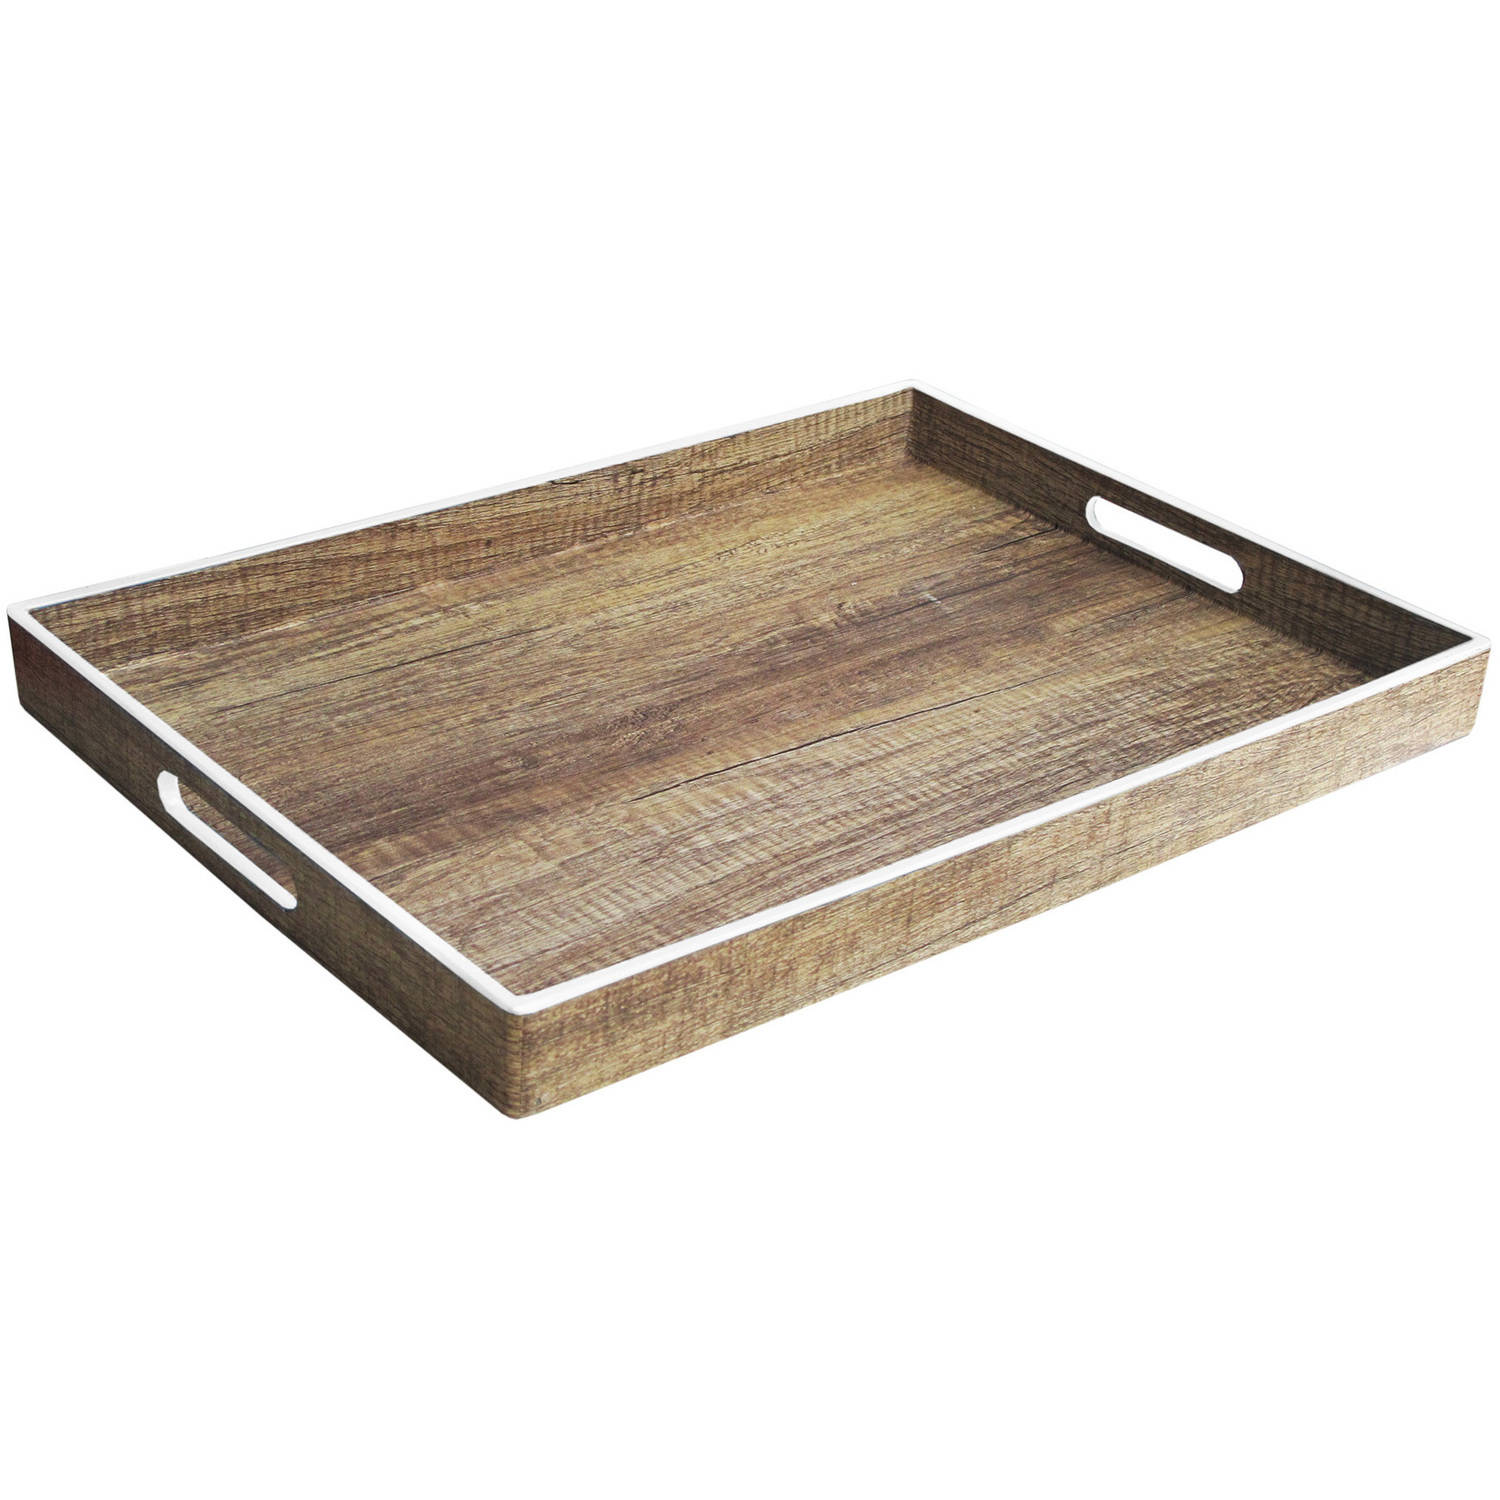 "Image of Poplar Finish Tray with White Rim, 14"" x 19"""